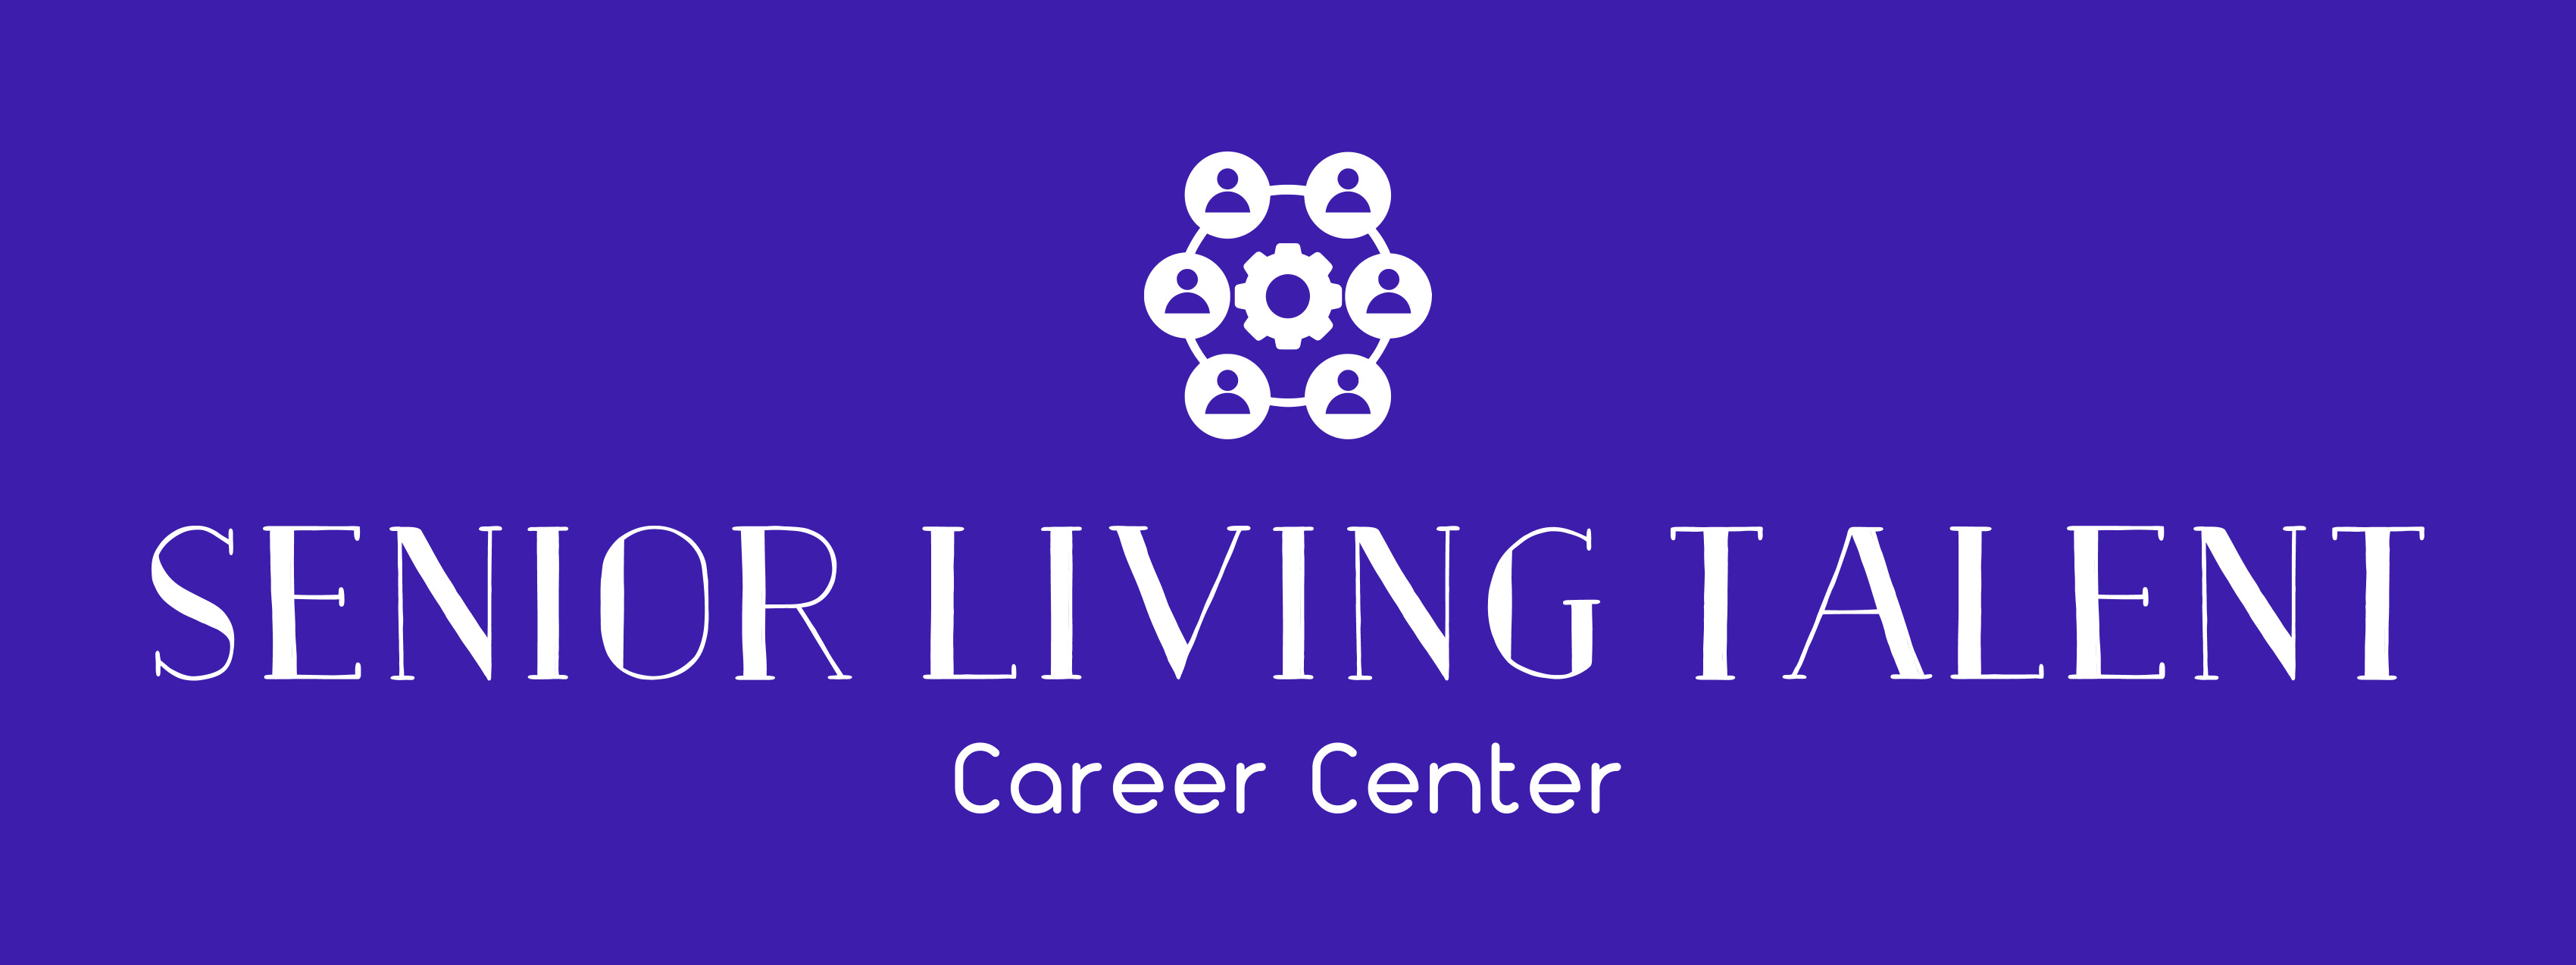 Senior Living Talent